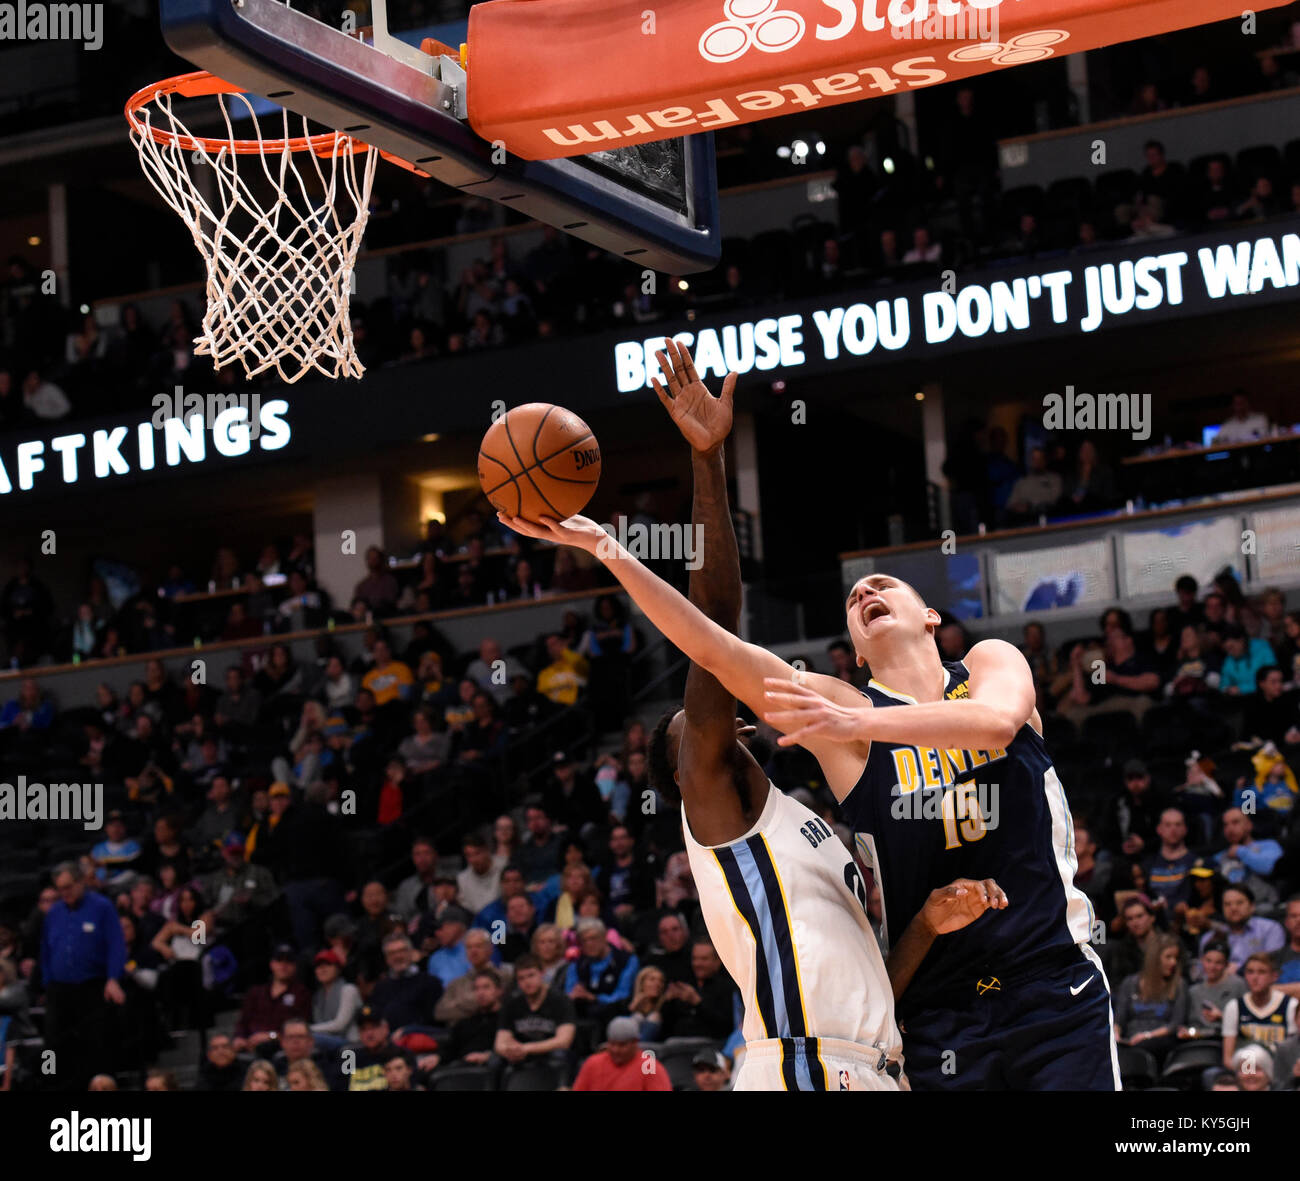 Denver Nuggets Stock Photos And Pictures: Jamychal Stock Photos & Jamychal Stock Images